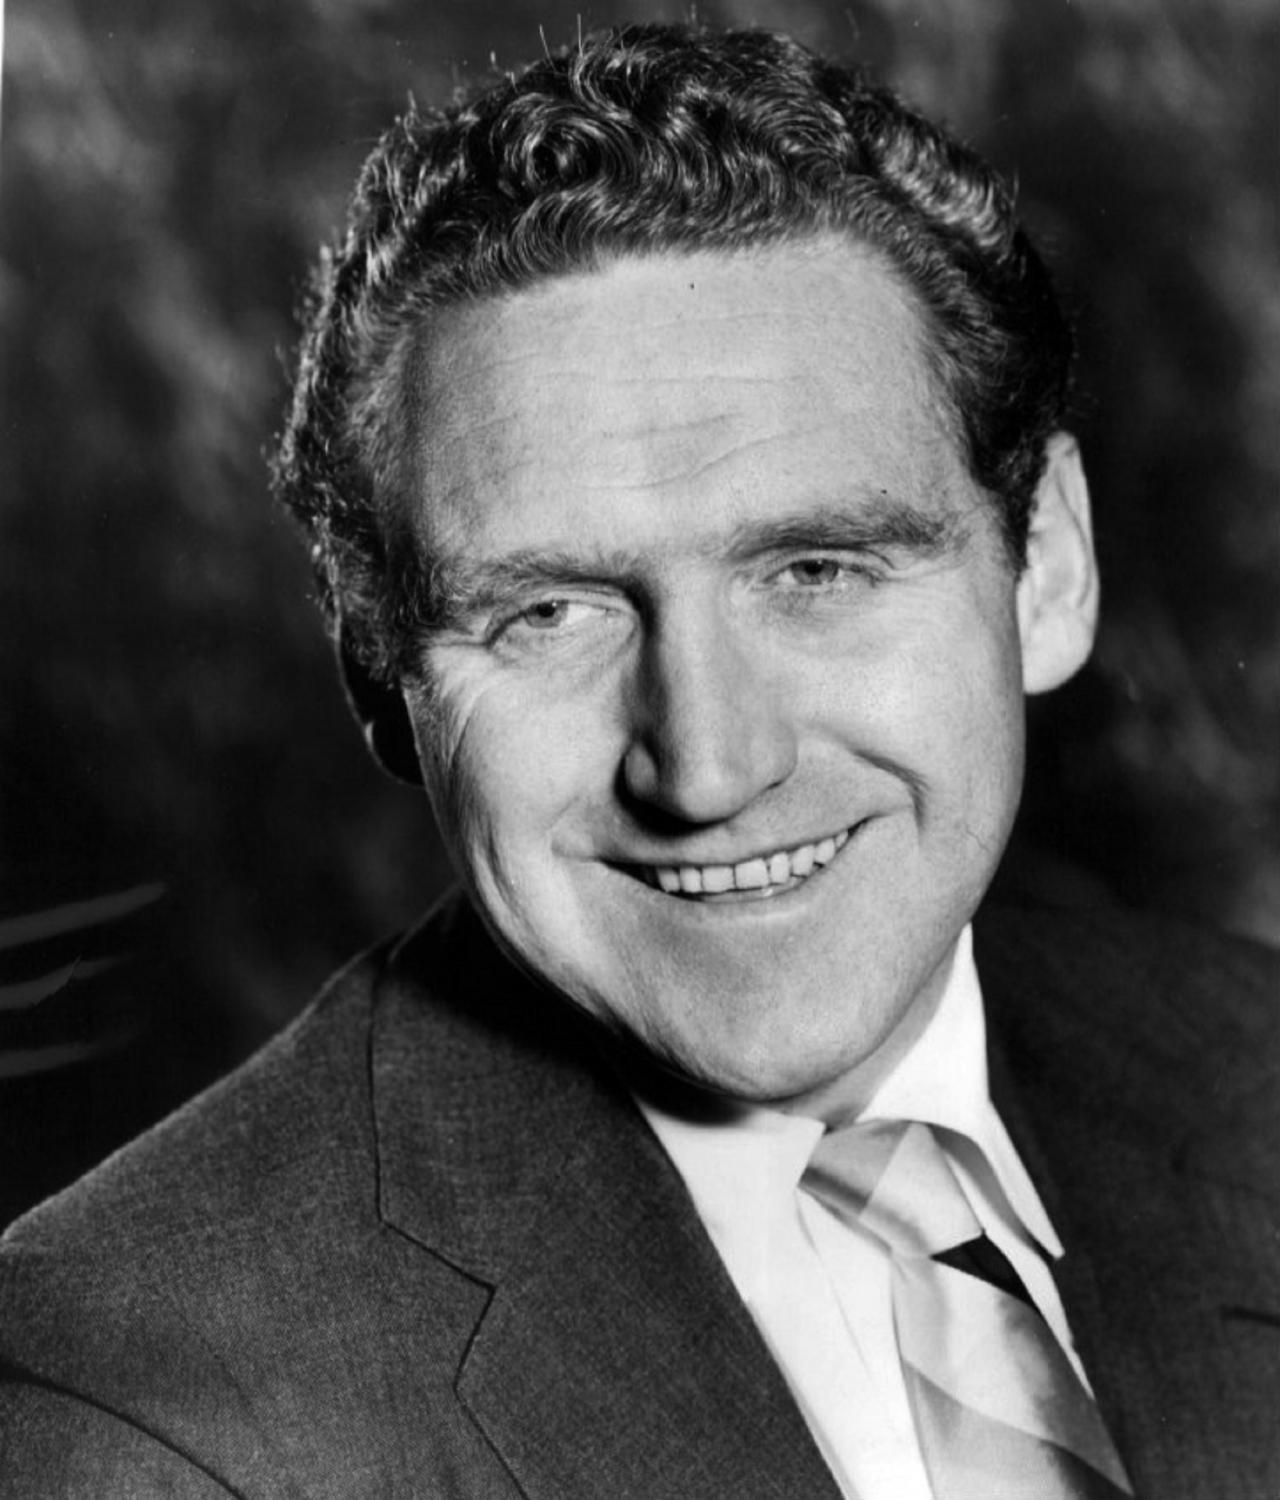 James Whitmore, television, james, film, famous, HQ Photo